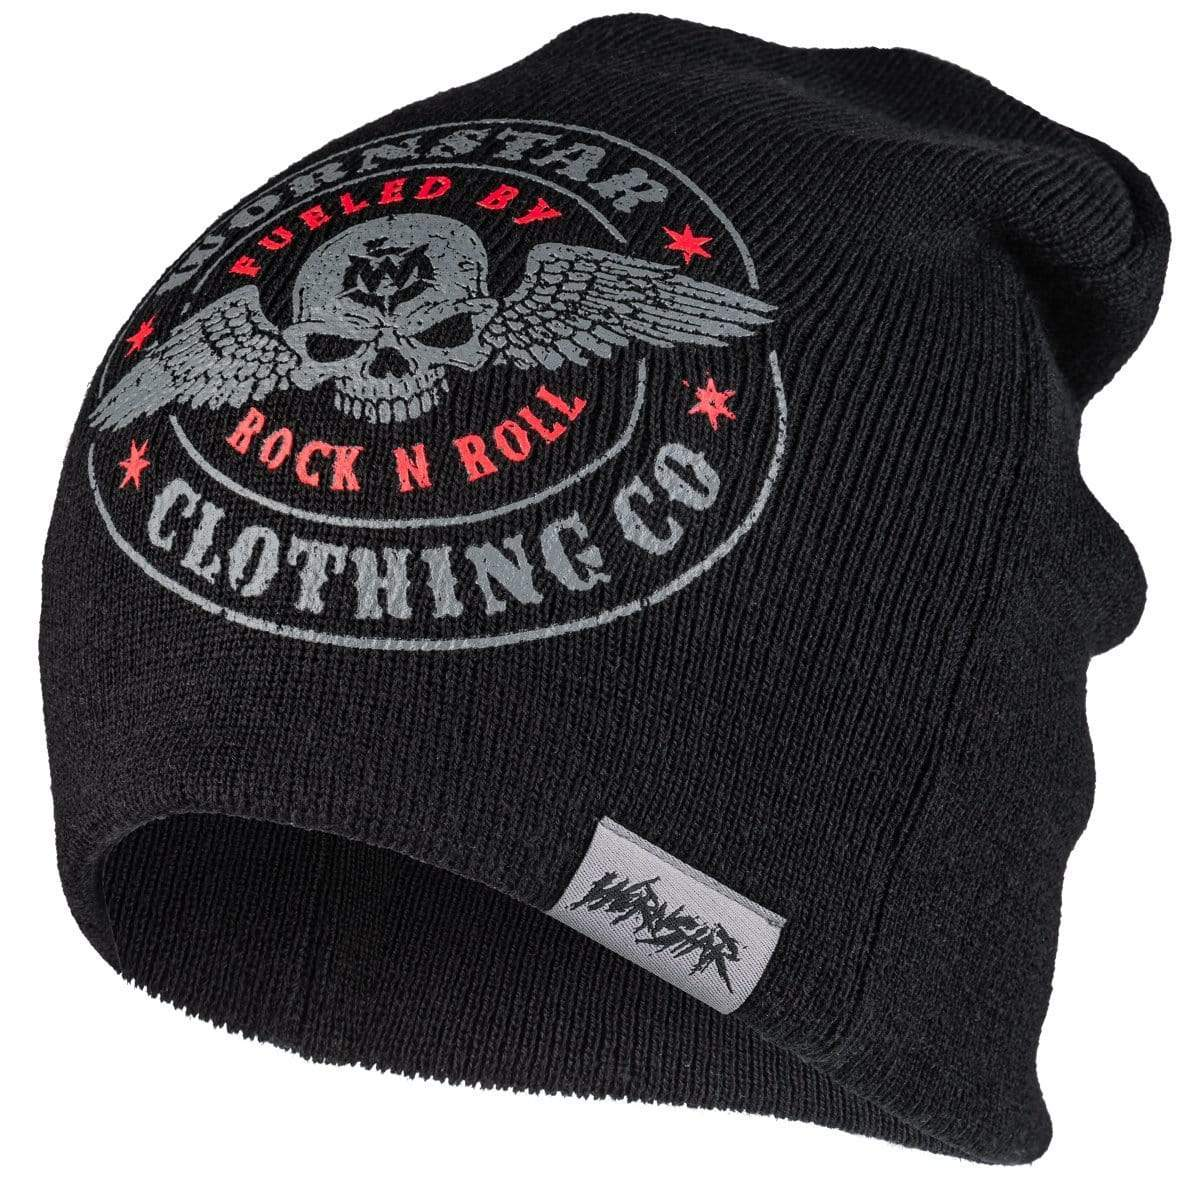 Wornstar Beanie Hat - Fuelled by Rock n Roll